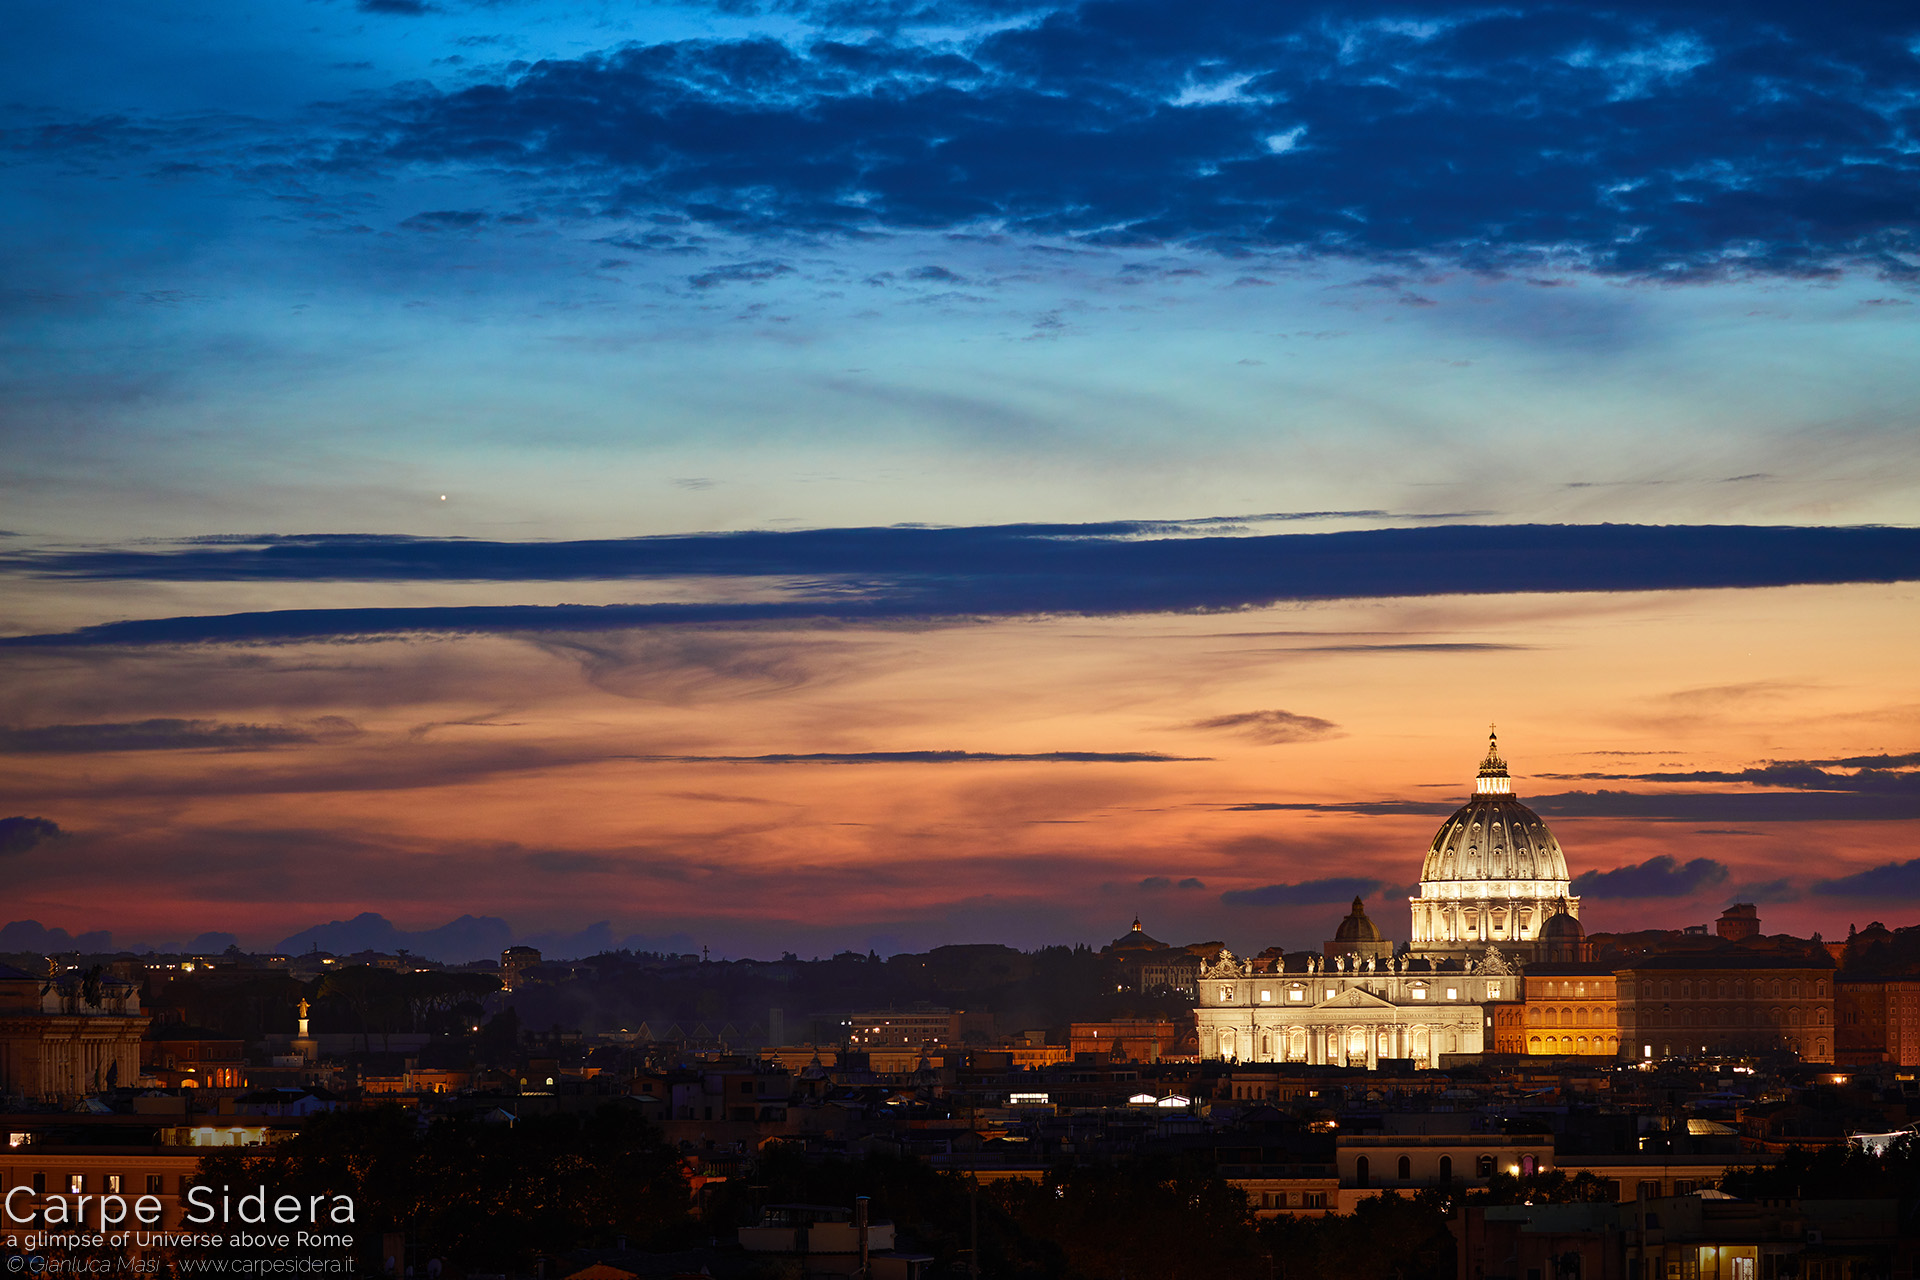 2. Planet Venus sets beside St. Peter's Basilica.